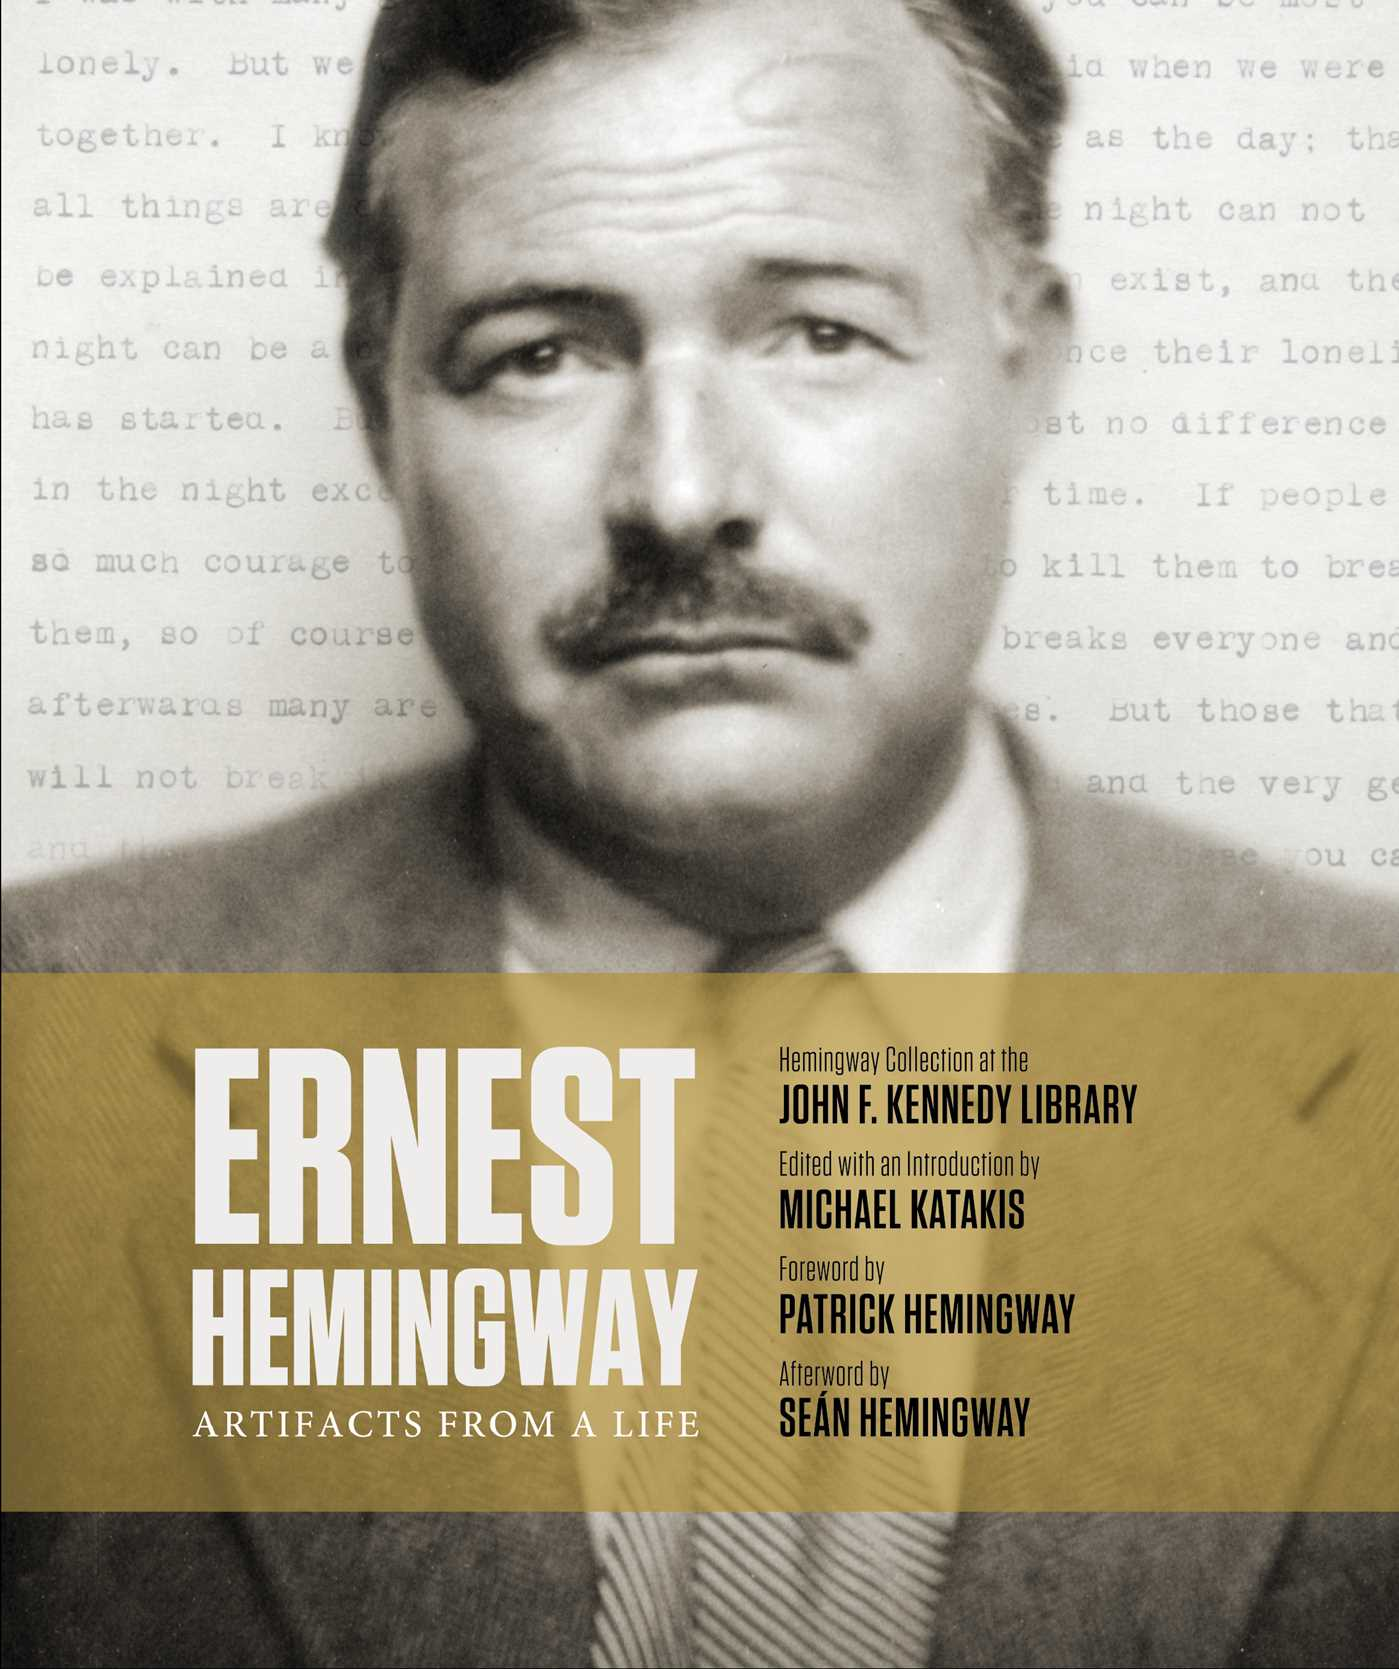 Ernest hemingway artifacts from a life 9781471172151 hr